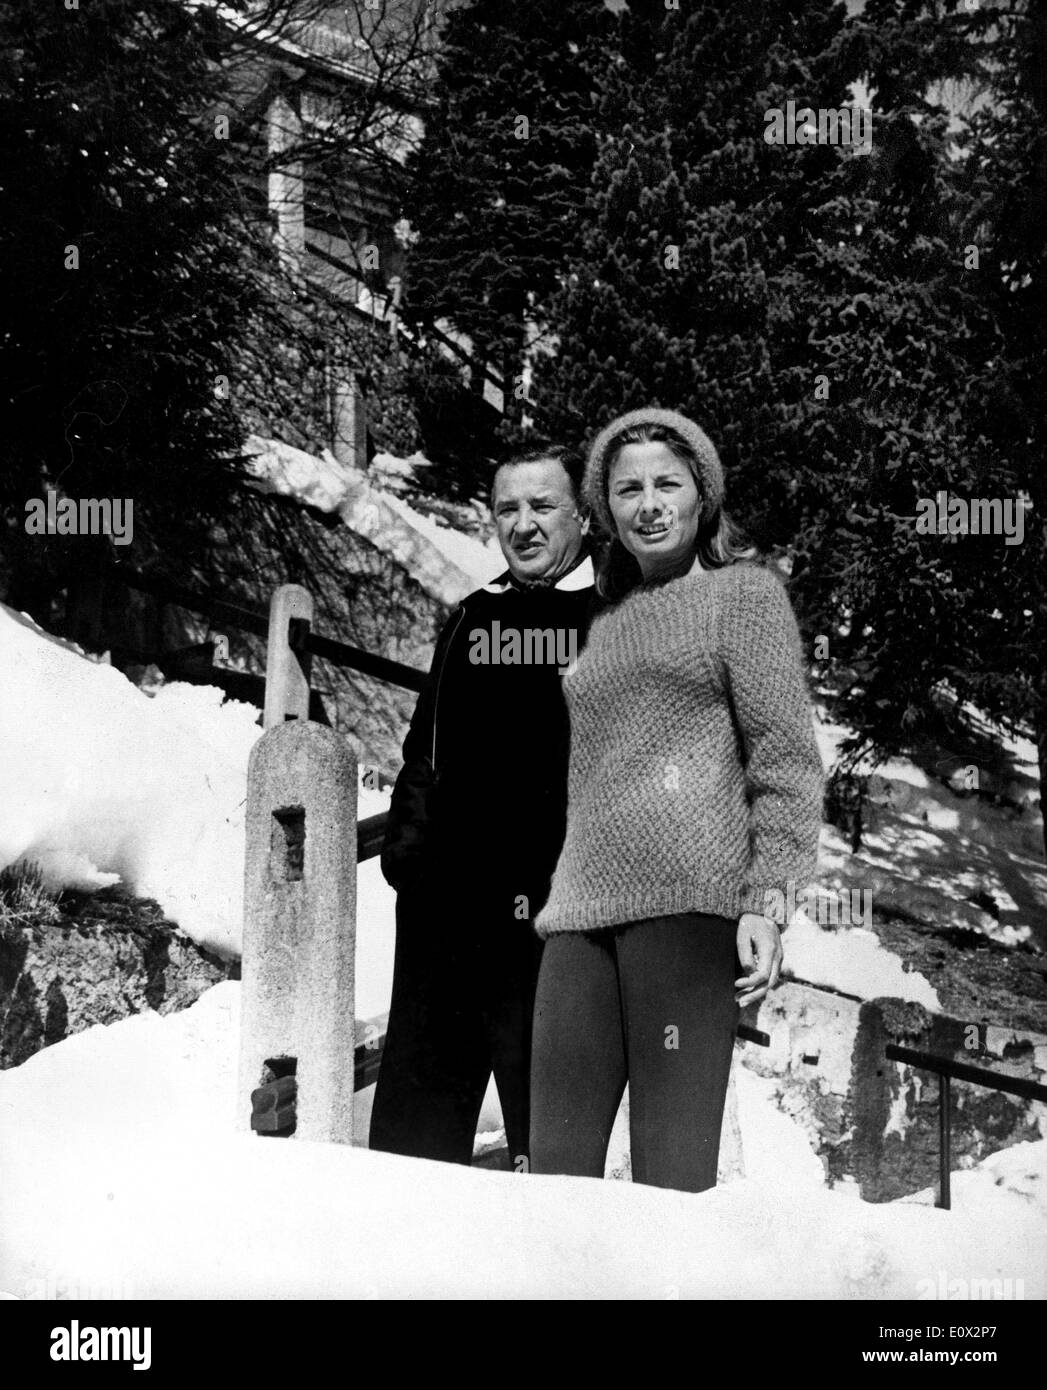 St moritz honeymoon of president of the ford motor company henry ford ii and his